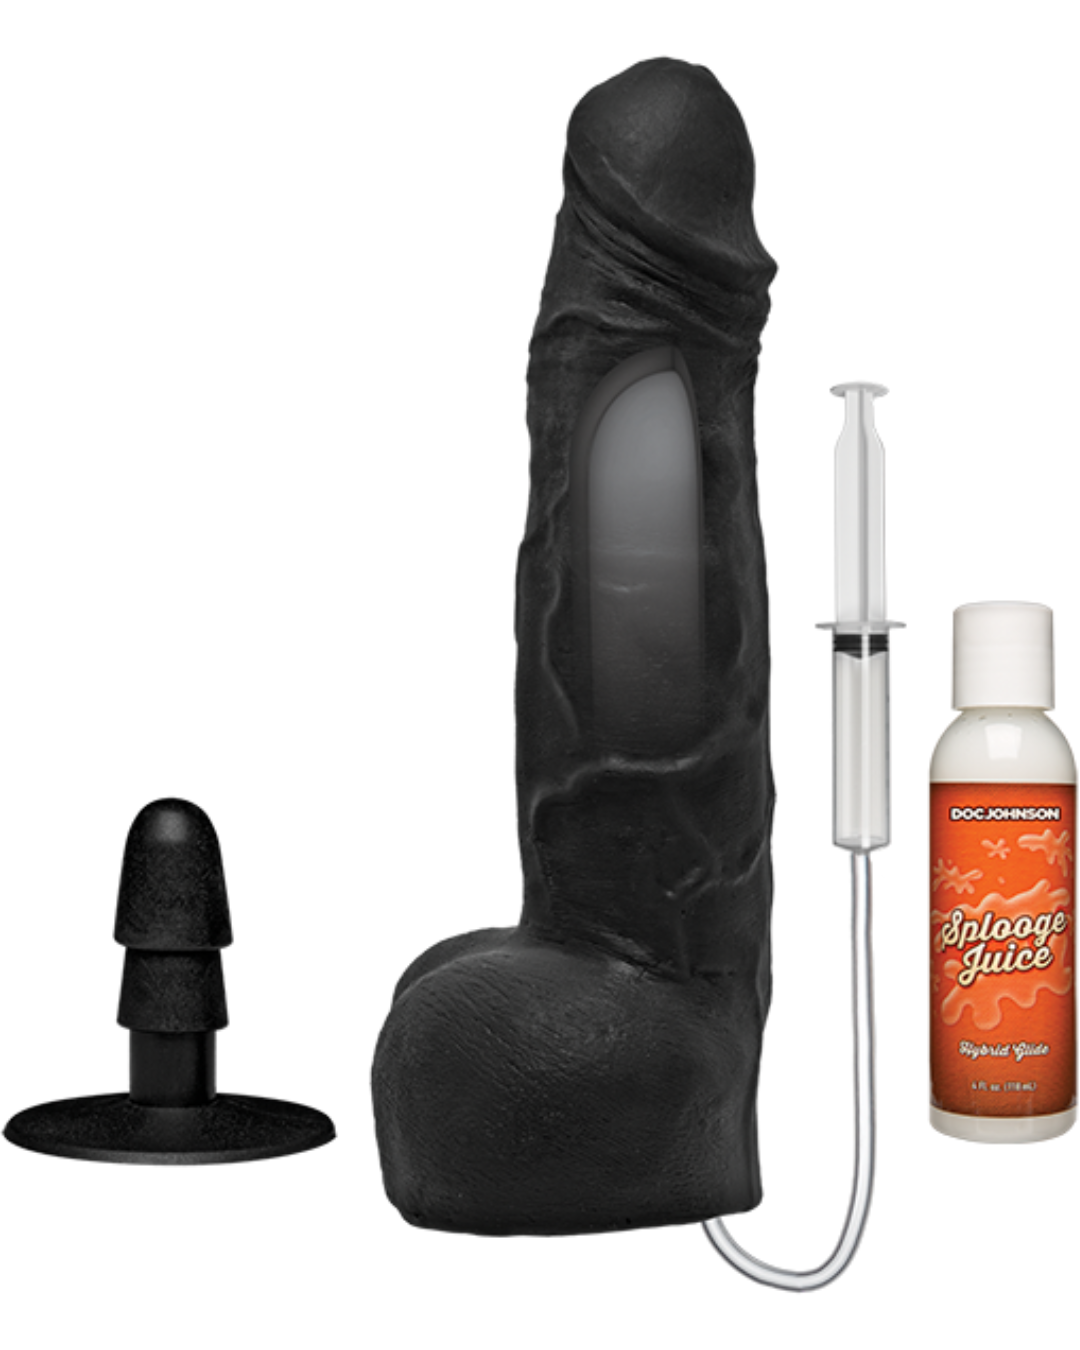 KINK Wet Works 10 Inch Dual Density Squirting Cumplay Cock with Removable Vac-U-Lock Suction Cup